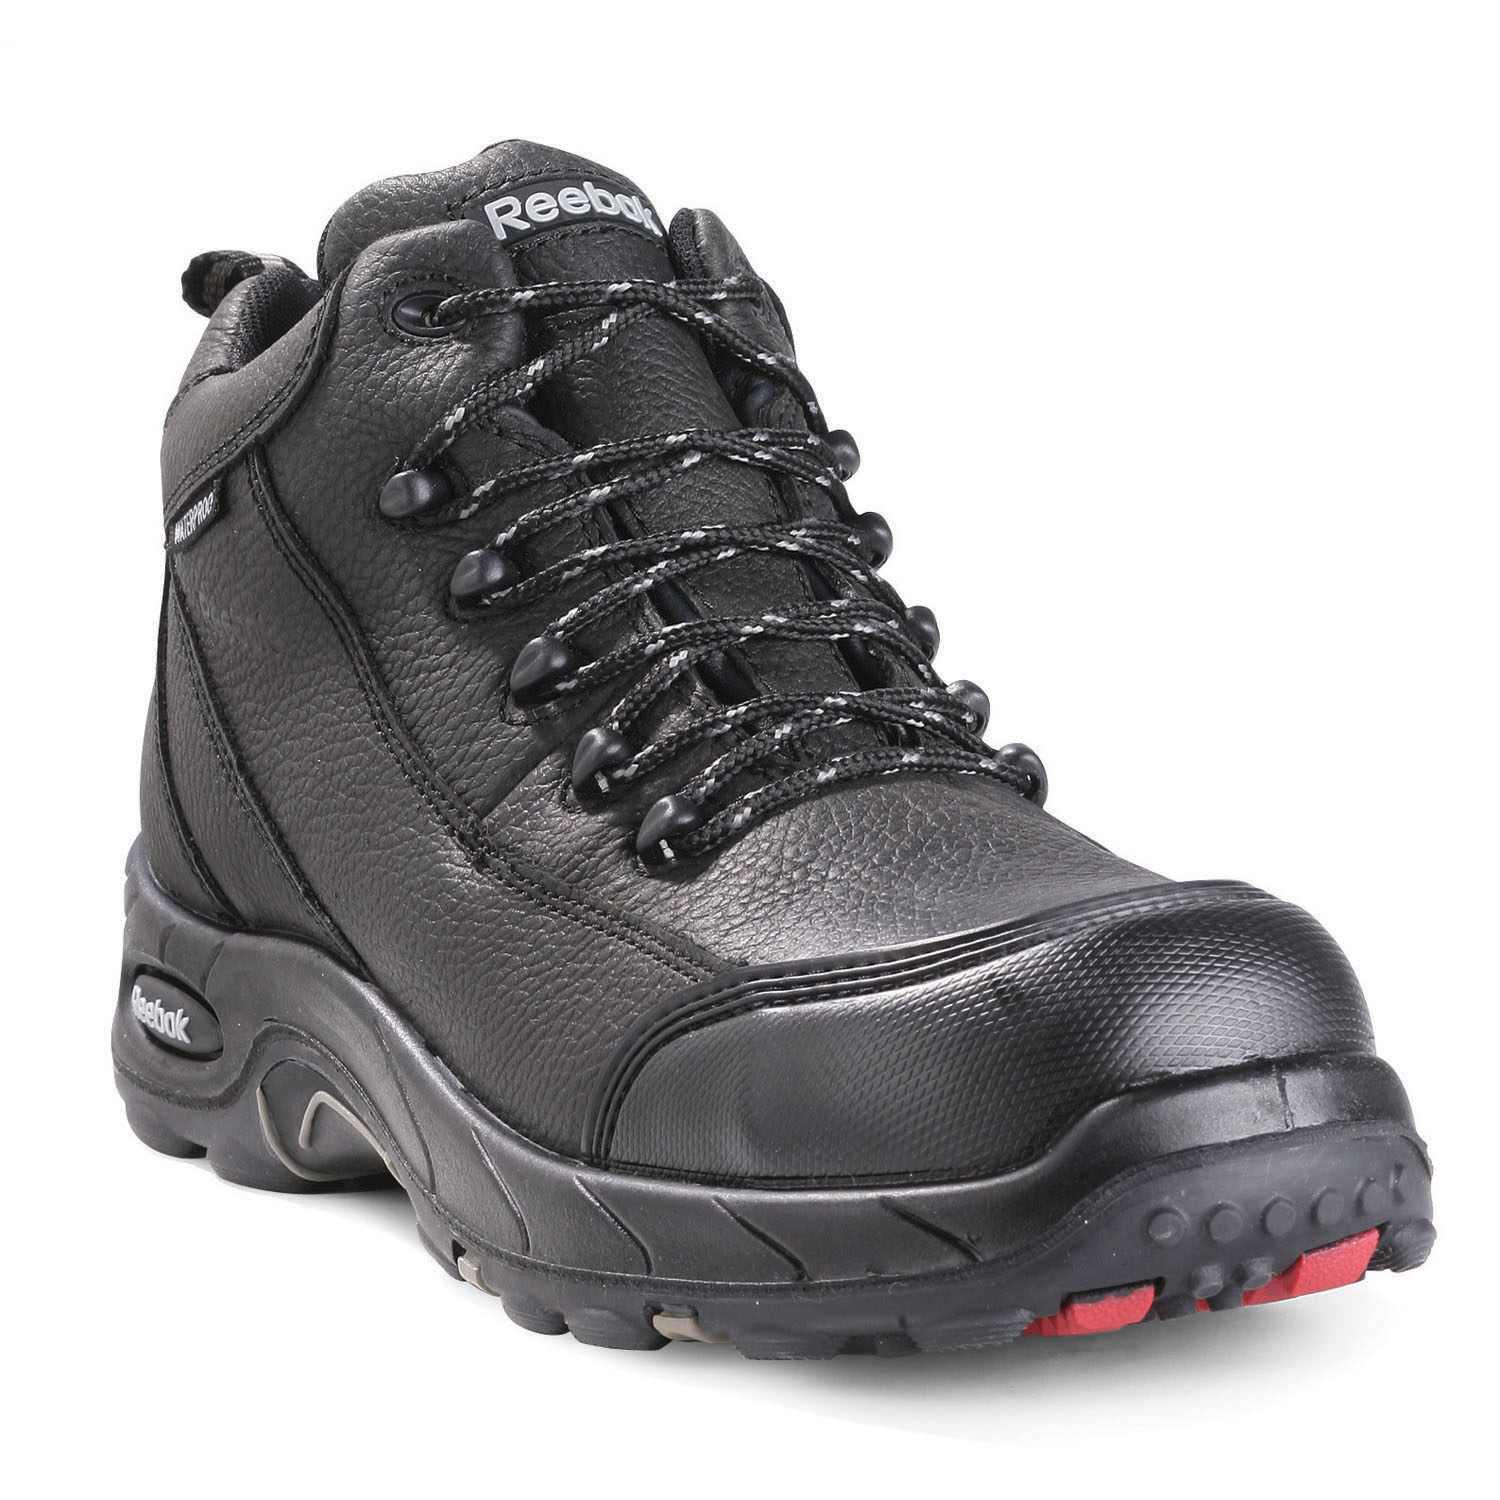 192bf148979 Reebok Sport Hiker Waterproof Composite Toe Boot.